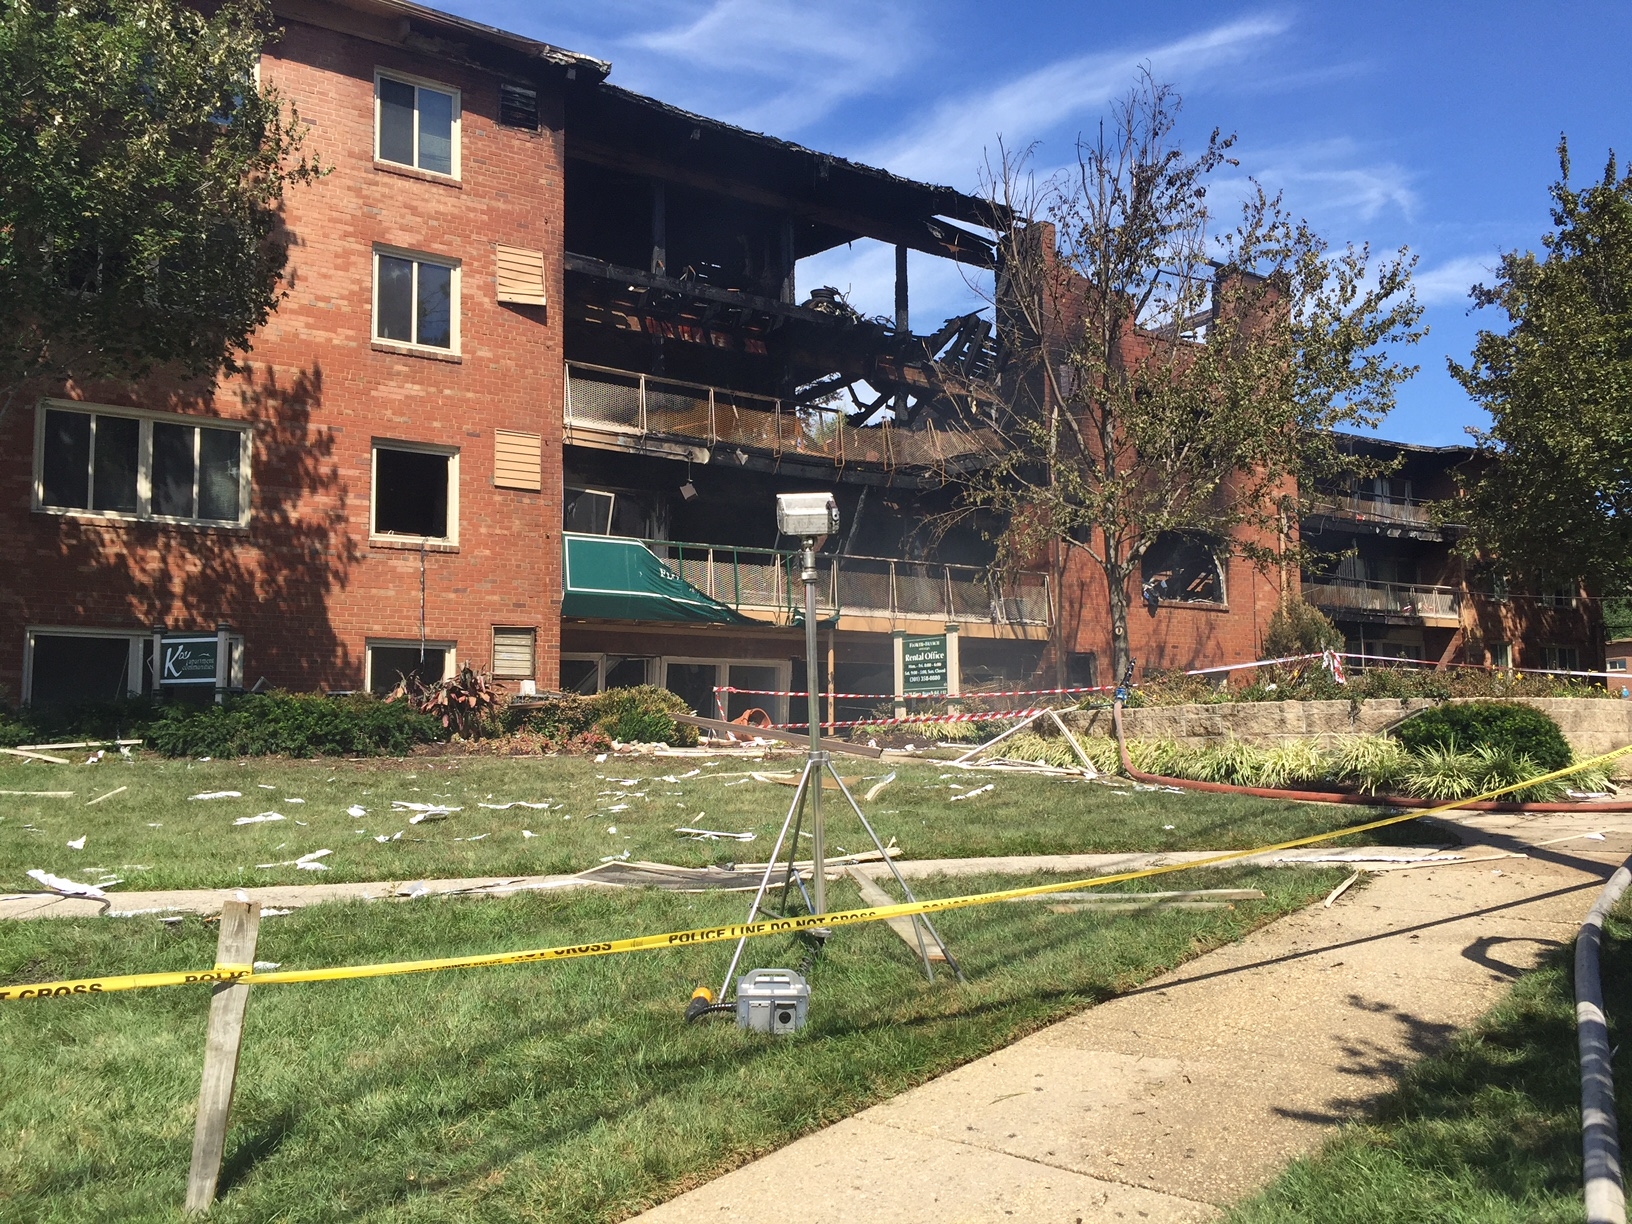 An apartment building on Piney Branch Road, in Silver Spring, after a fire and explosion just before midnight. (WTOP/Dennis Foley)